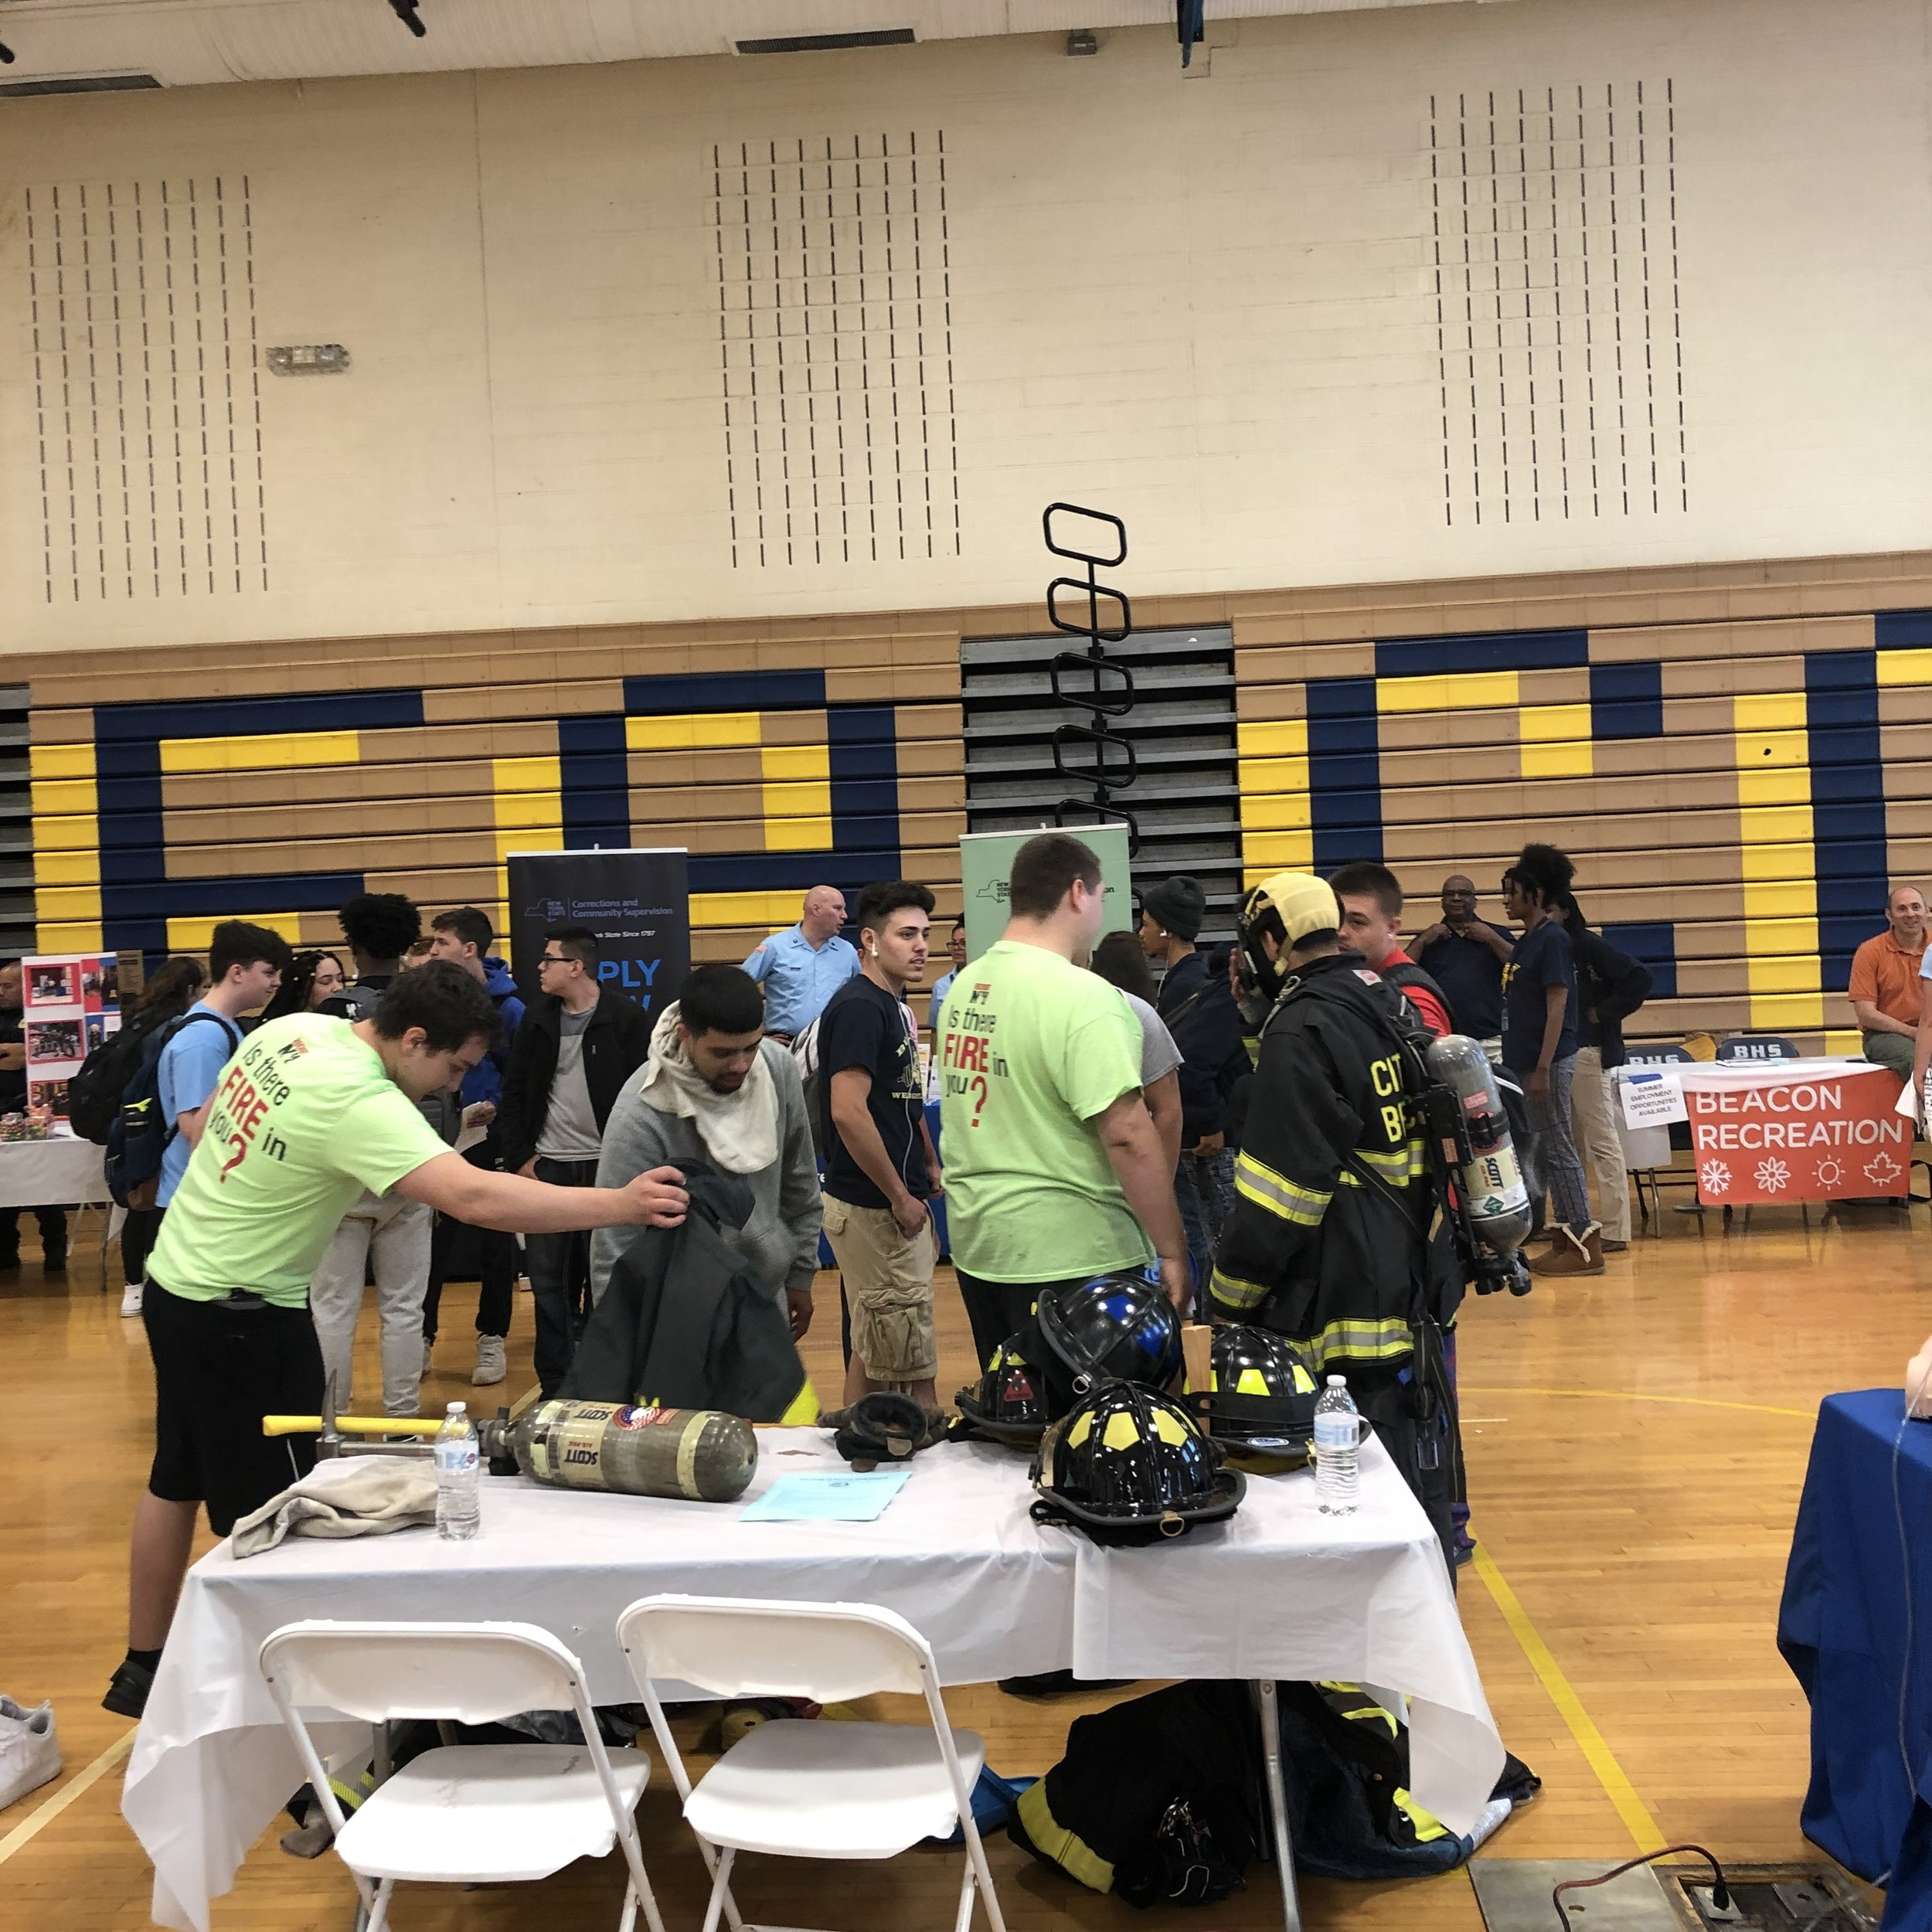 Beacon career Fair 2019-Fire-Fighters.jpg